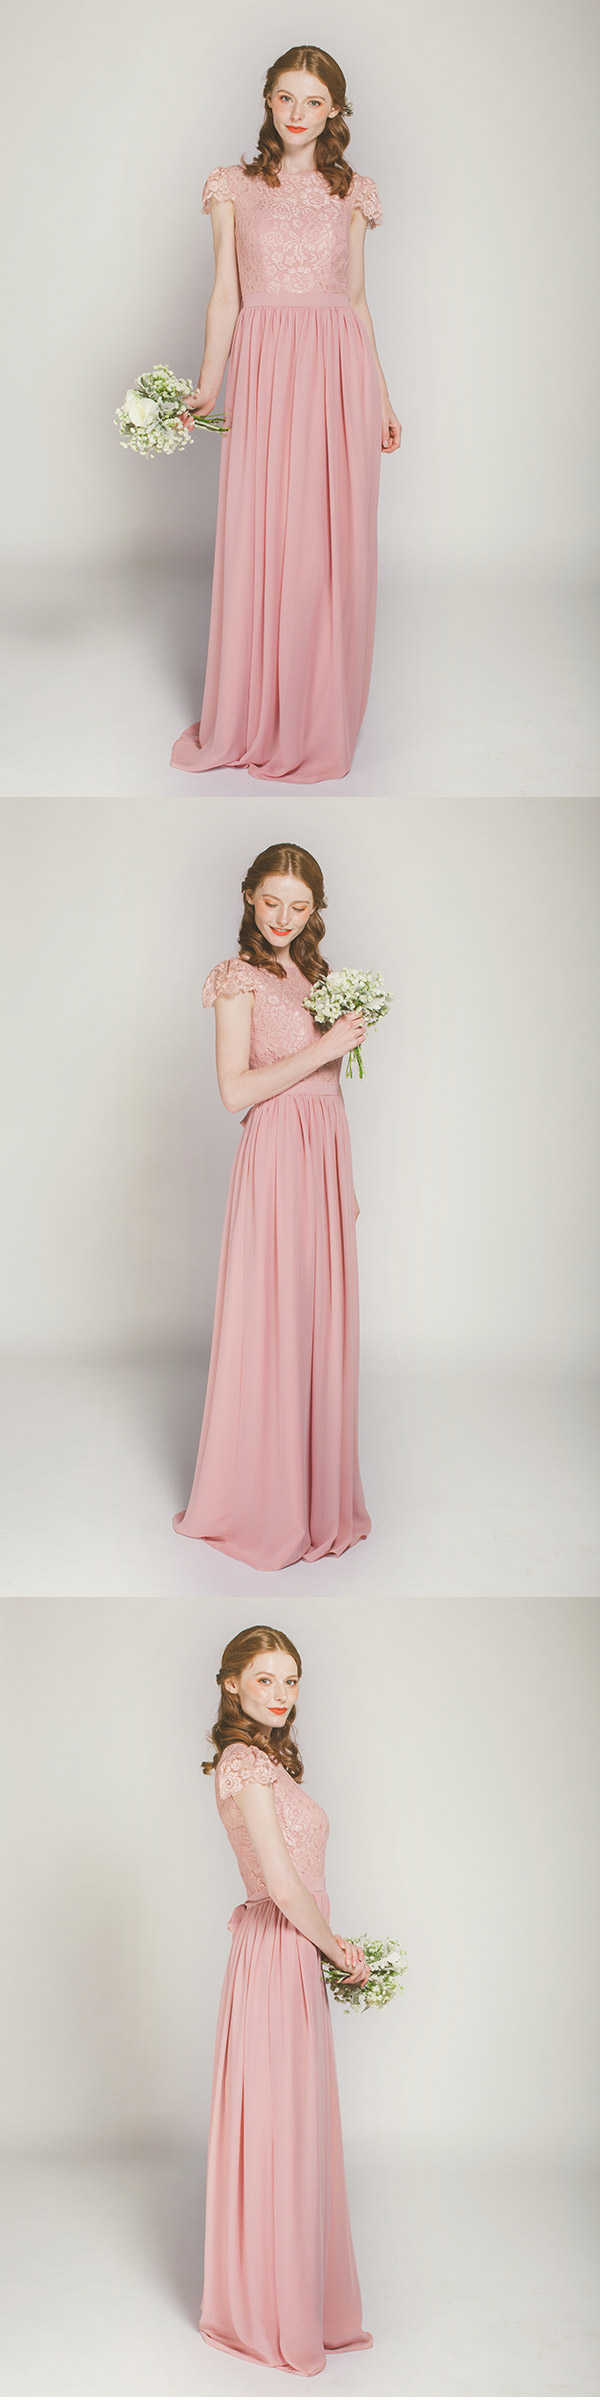 Fullsize Of Dusty Rose Bridesmaid Dresses